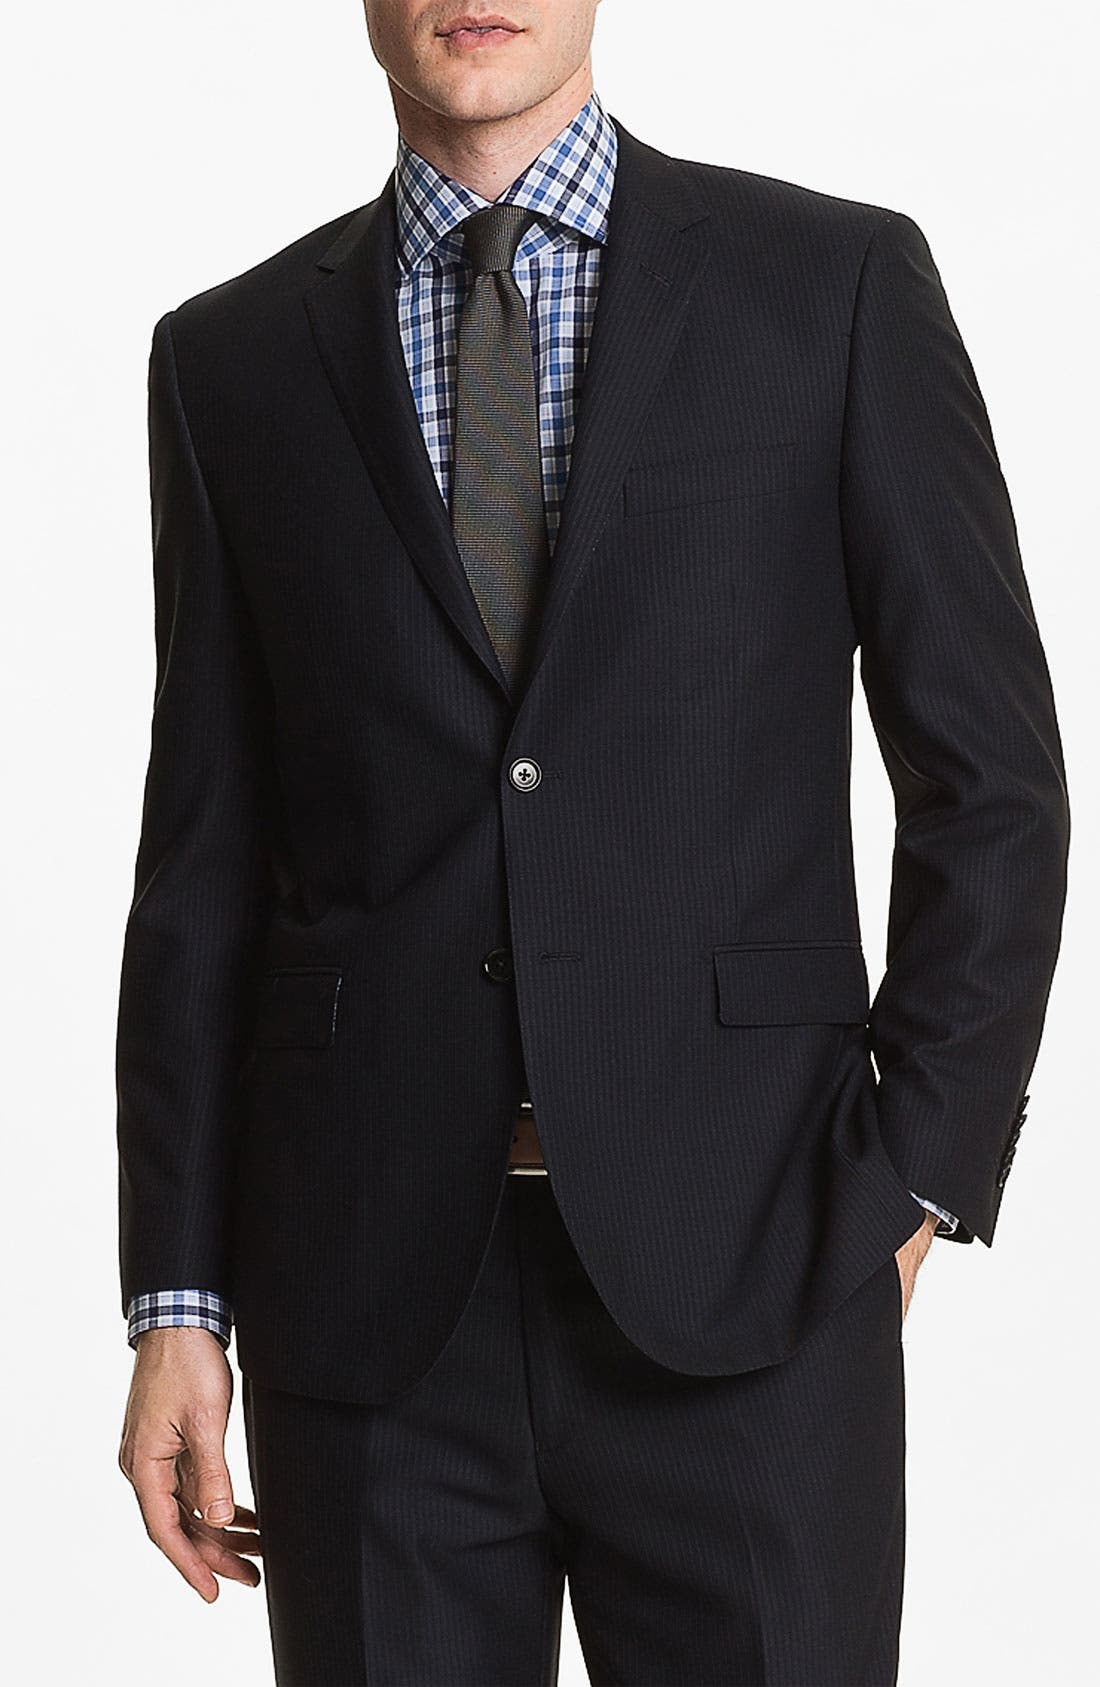 Alternate Image 1 Selected - English Laundry Trim Fit Stripe Suit (Online Only)